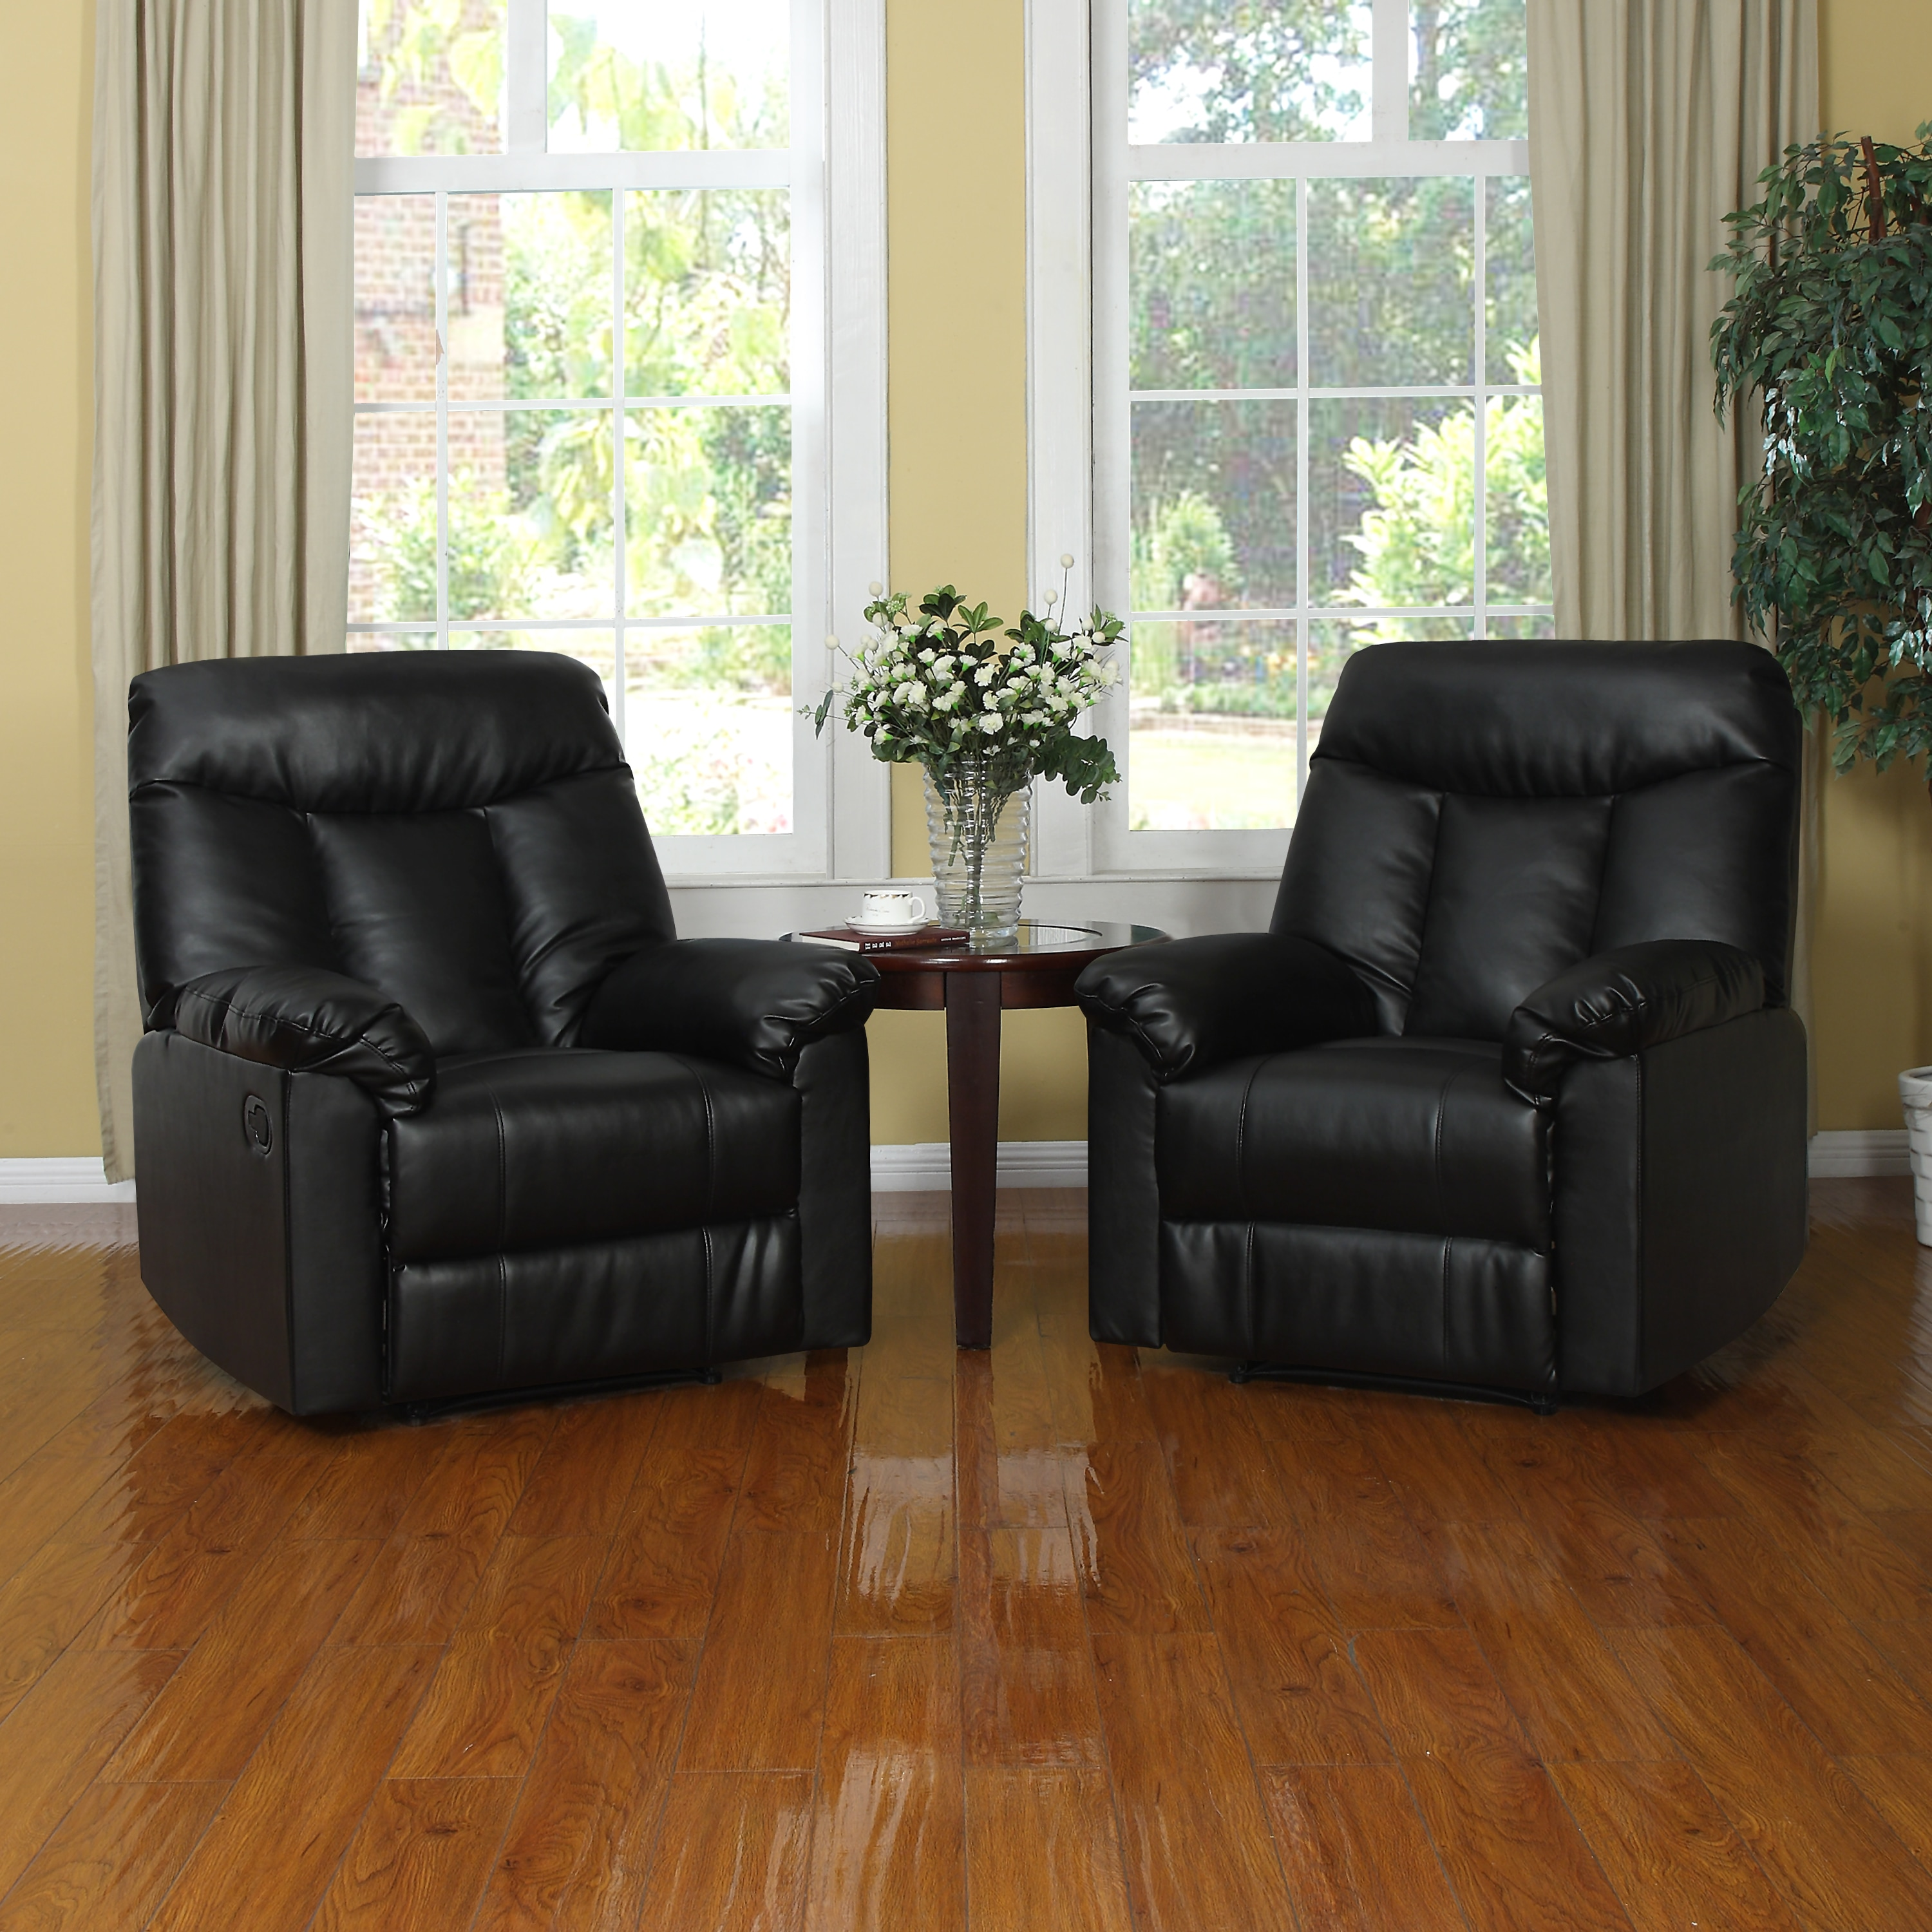 Portfolio ProLounger Wall Hugger Black Renu Leather Recliners (Set of 2) at Sears.com